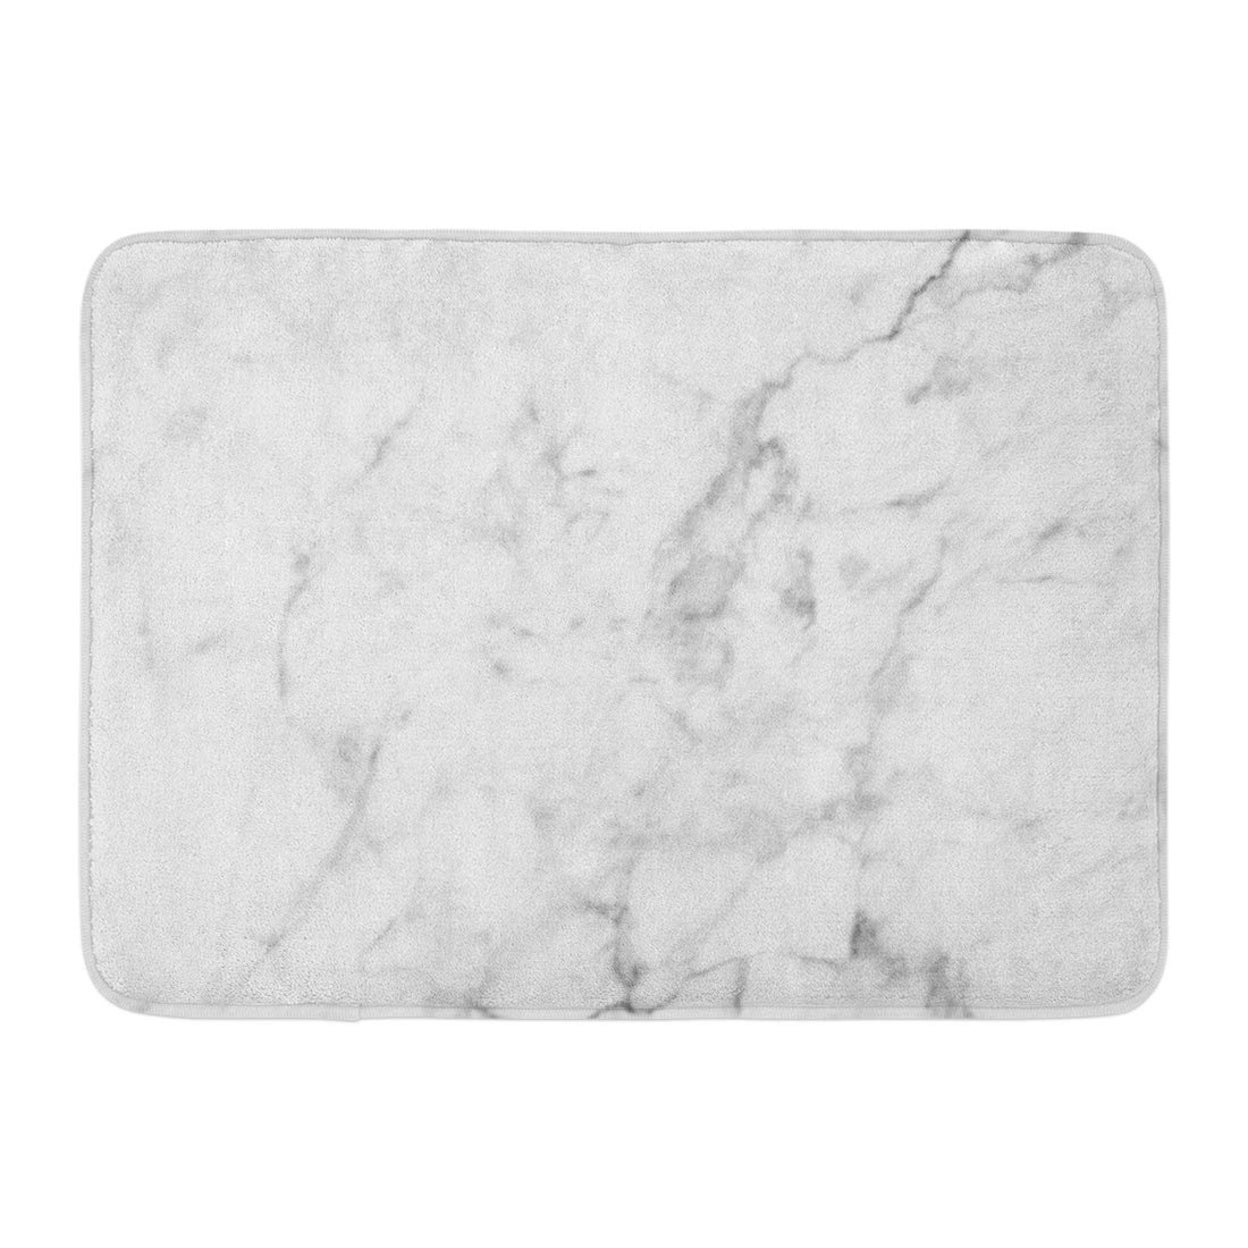 Gray Black Marble Patterned Brown Slab Abstract Ceramic Solid Wave Doormat Floor Rug Bath Mat 23 6x15 7 Inch Multi On Sale Overstock 31776201